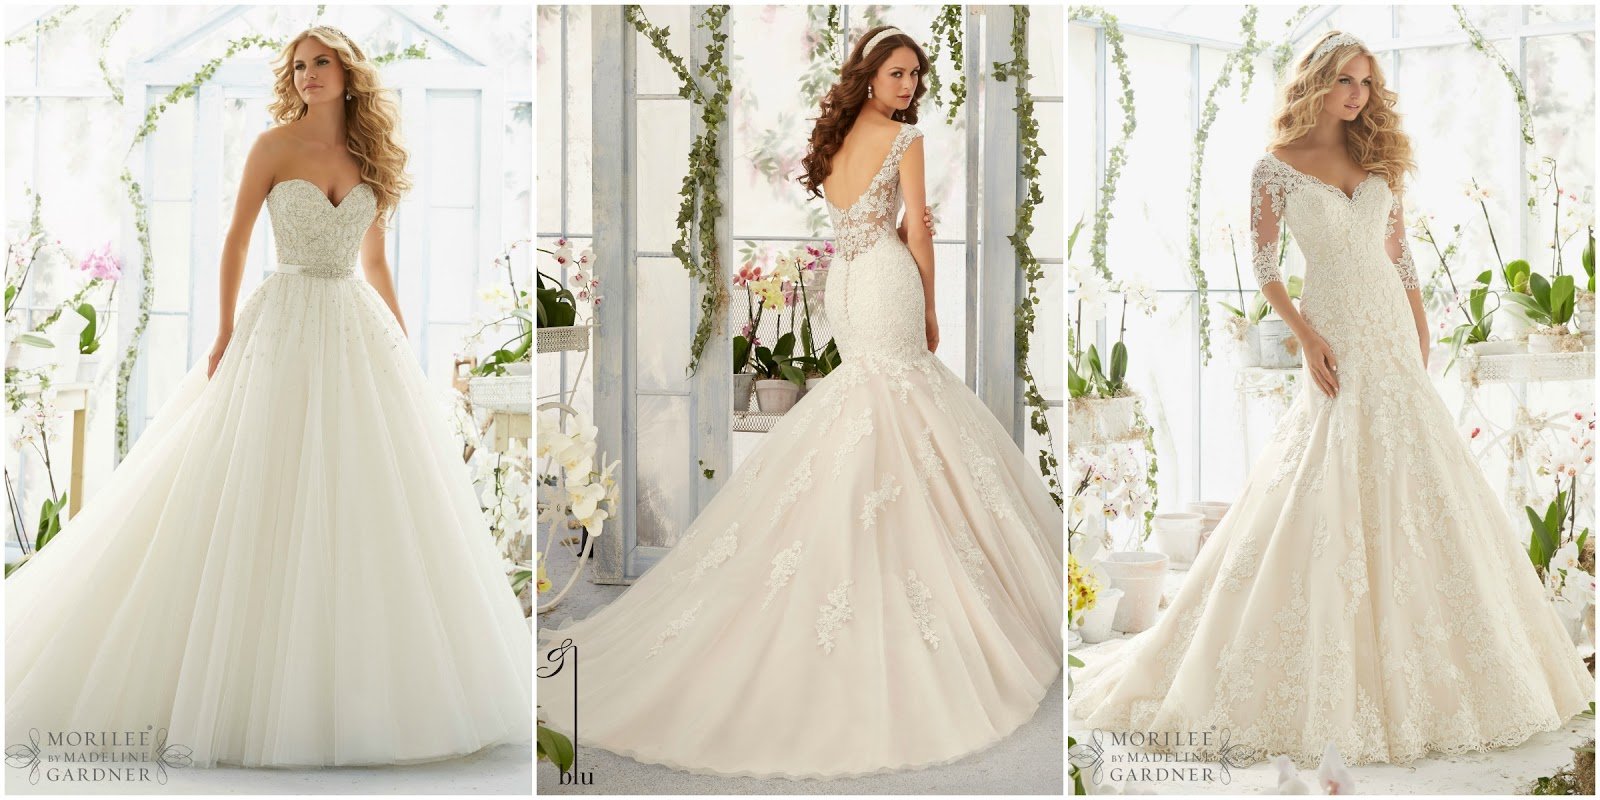 say yes to the dress wedding dresses photo - 1